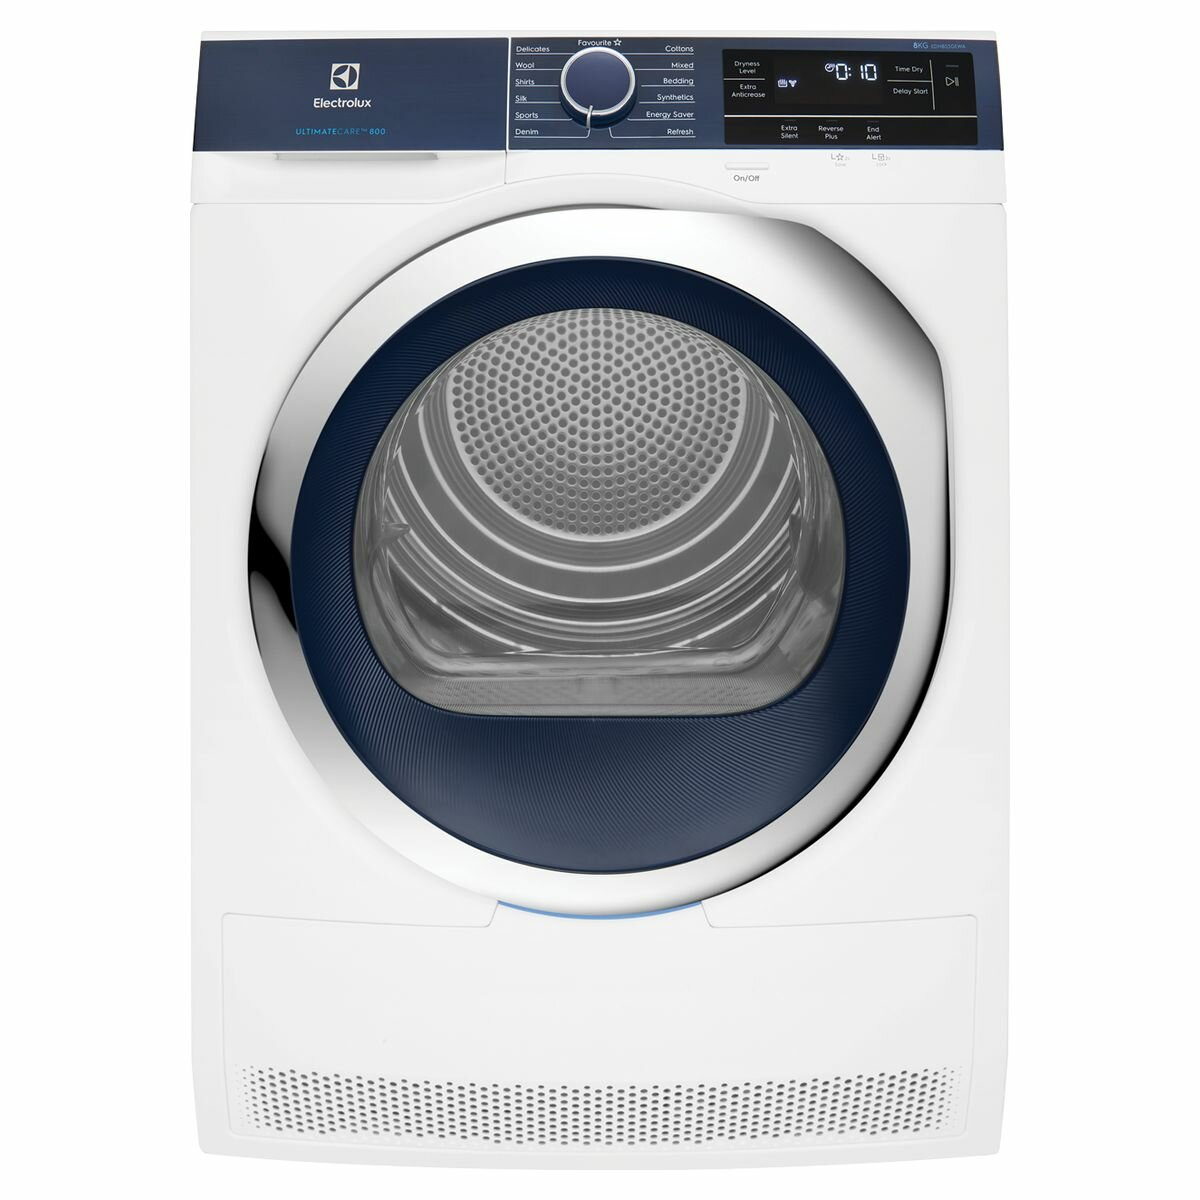 Electrolux EDH803BEWN 8kg Heat Pump Dryer